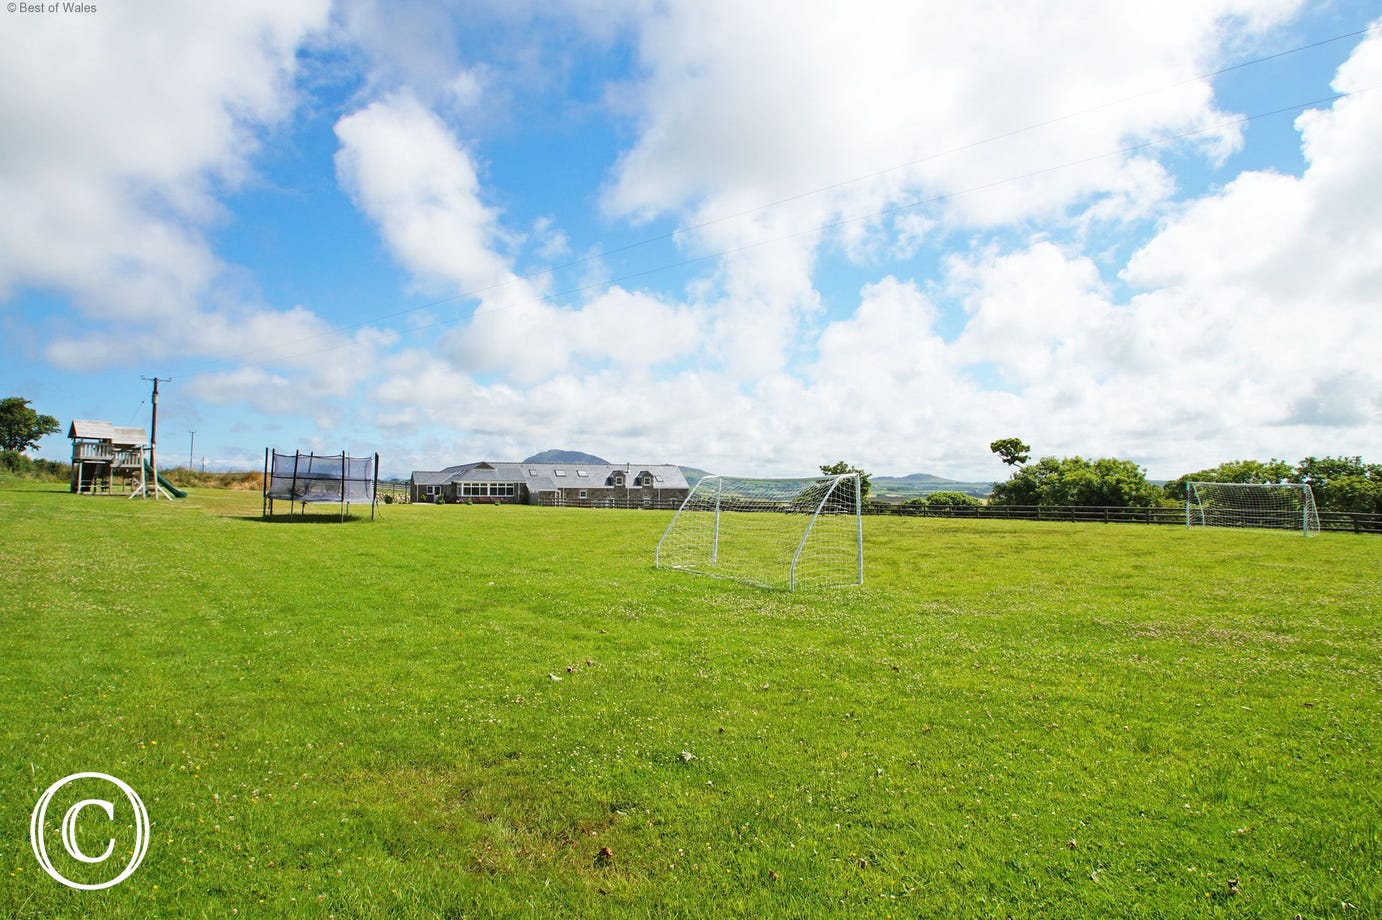 Large play area, surrounded by spectacular views of the Llyn Peninsula.